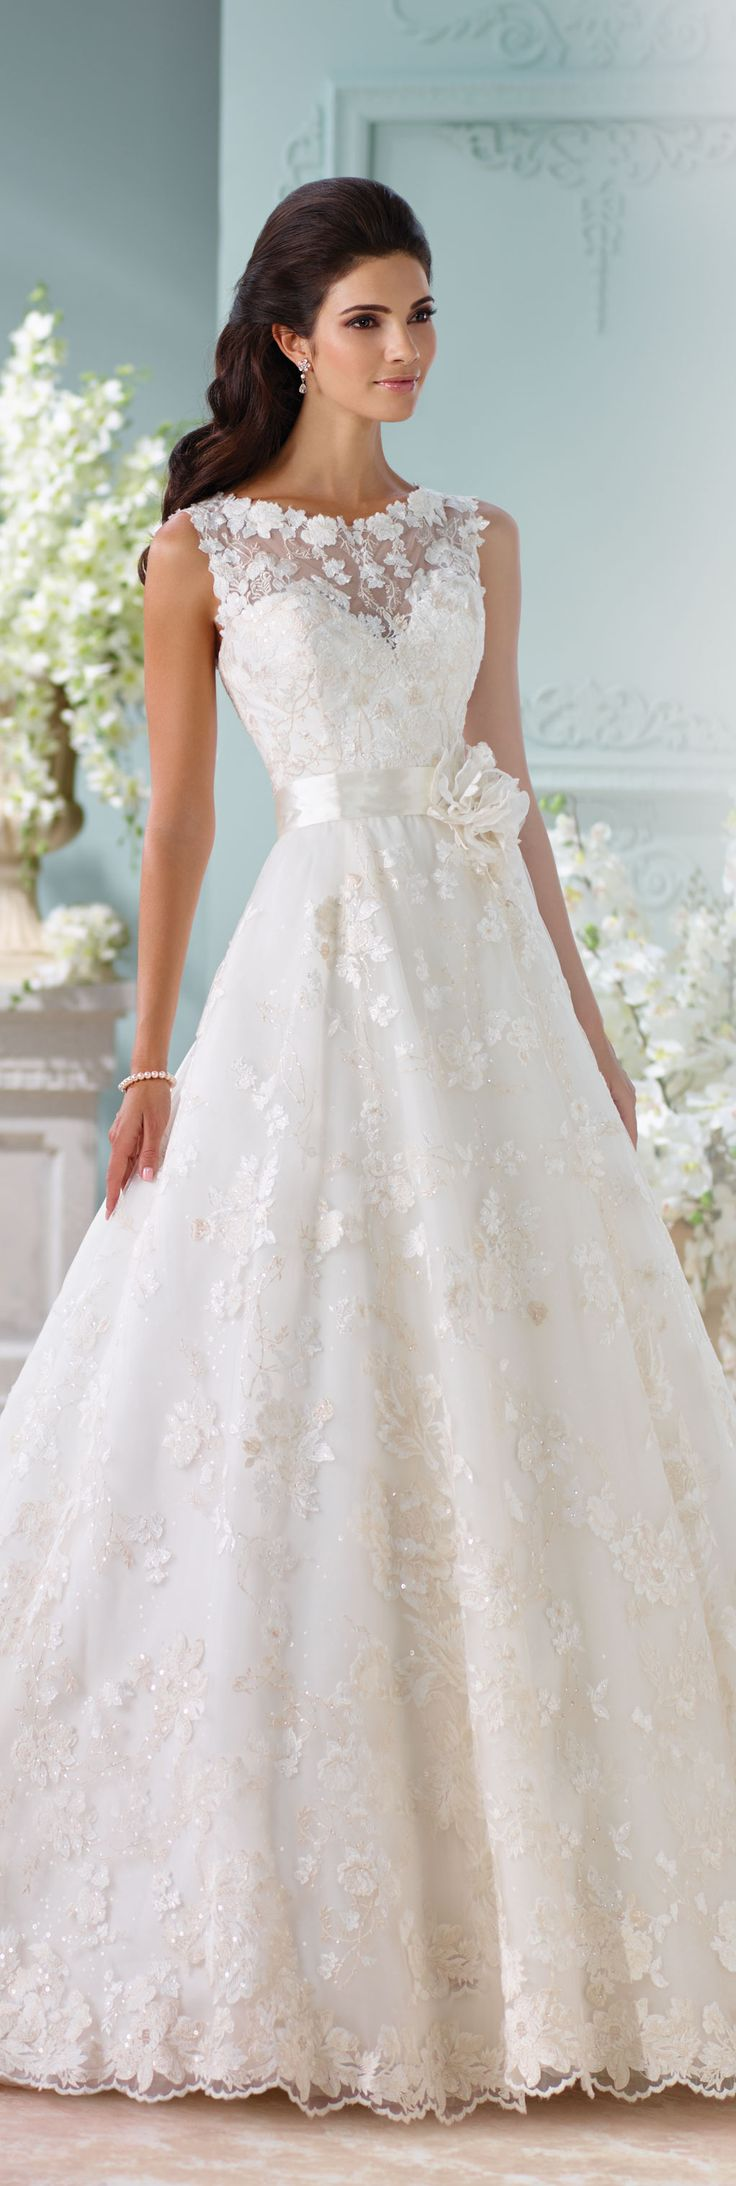 The David Tutera for Mon Cheri Spring 2016 Wedding Gown Collection - Style No. 116218 Kyra #laceweddingdress